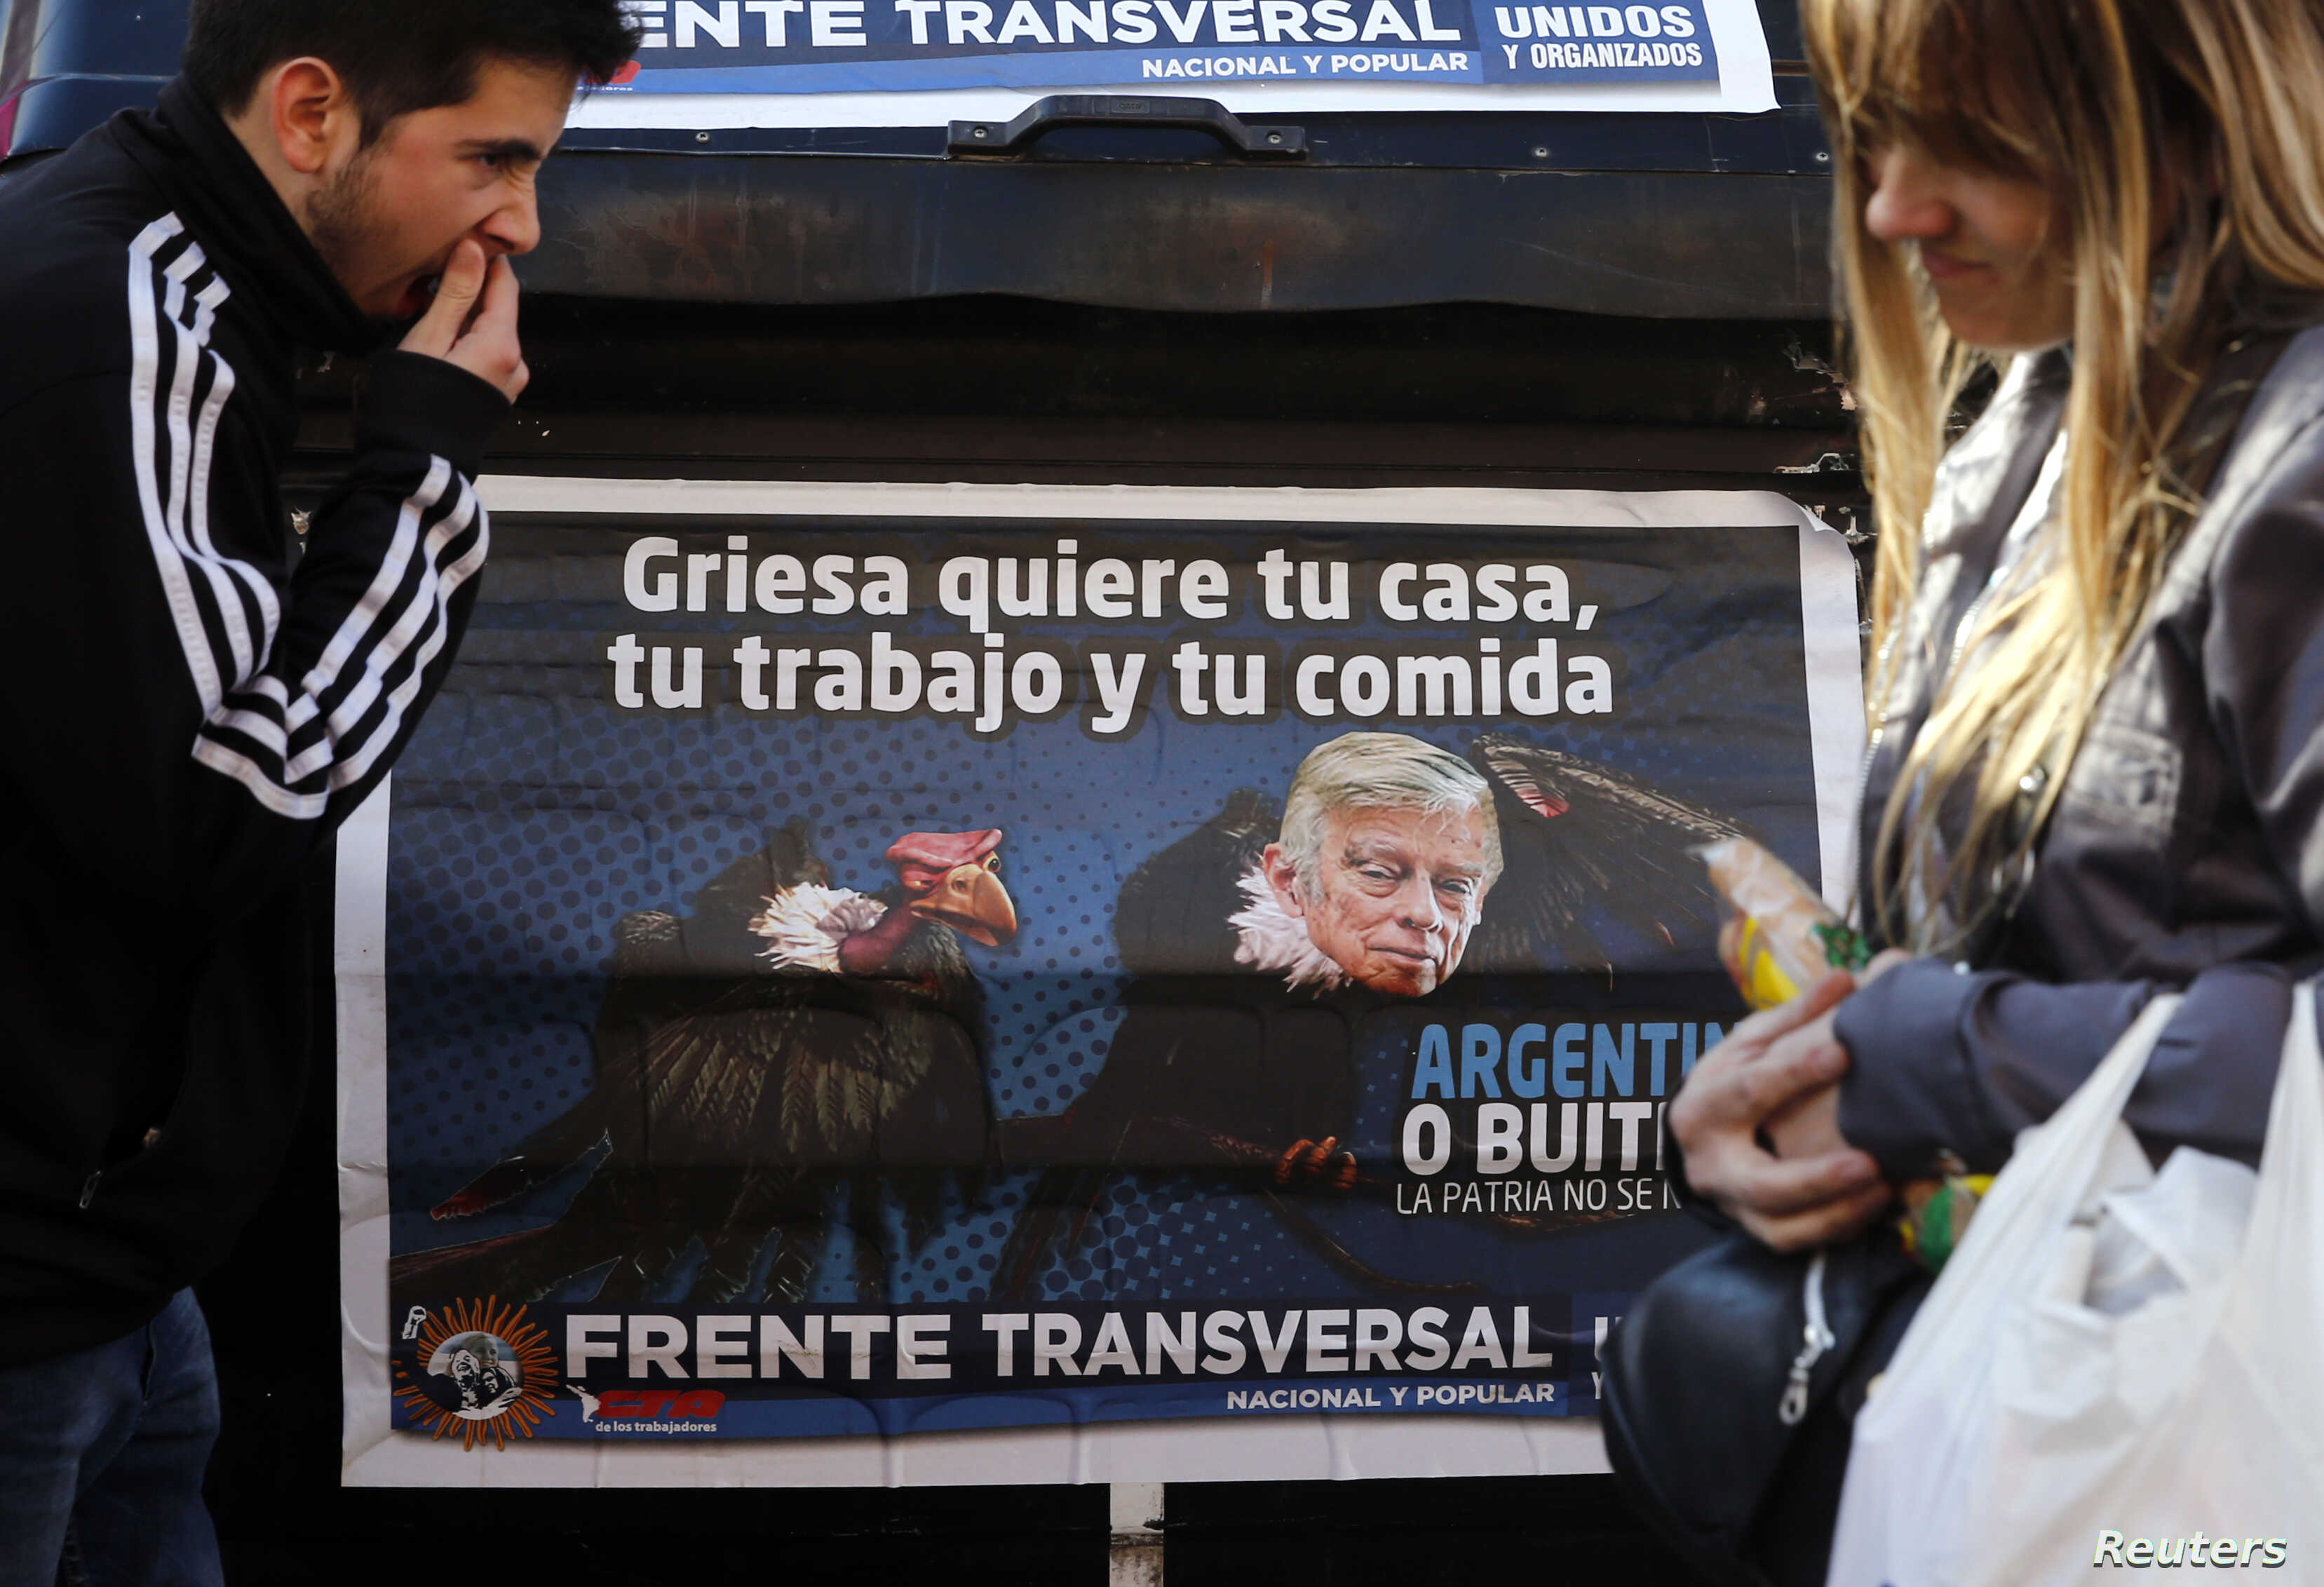 A poster depicts U.S. District Court Judge Thomas Griesa, overseeing a case in which U.S. hedge funds are suing Argentina, as a vulture in Buenos Aires, Aug. 12, 2014.